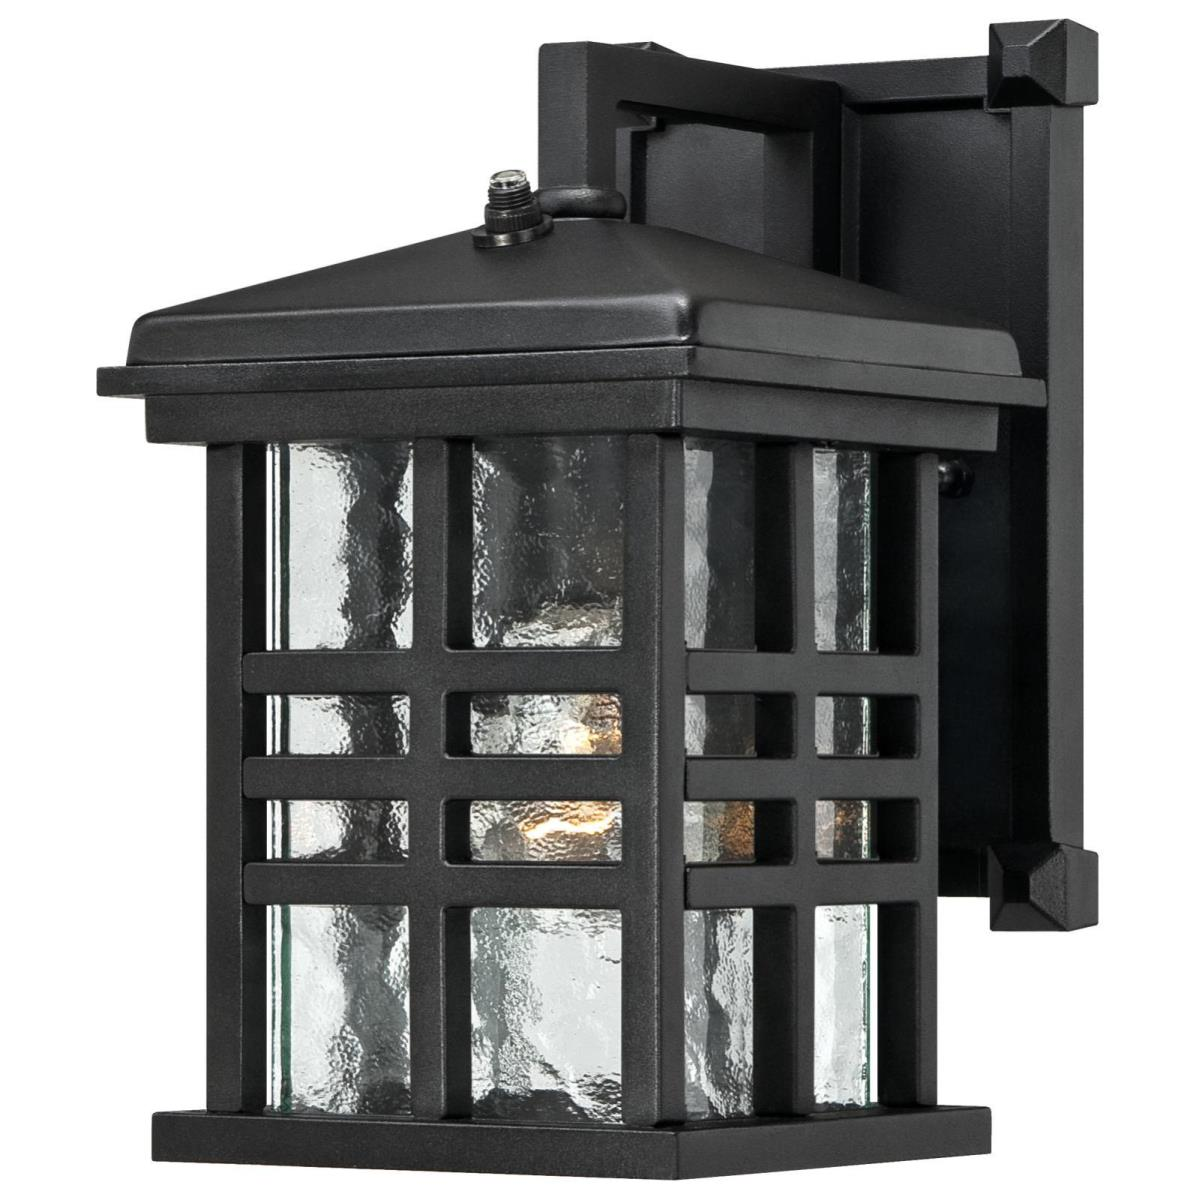 1 Light Wall Fixture with Dusk to Dawn Sensor Textured Black Finish with Clear Water Glass